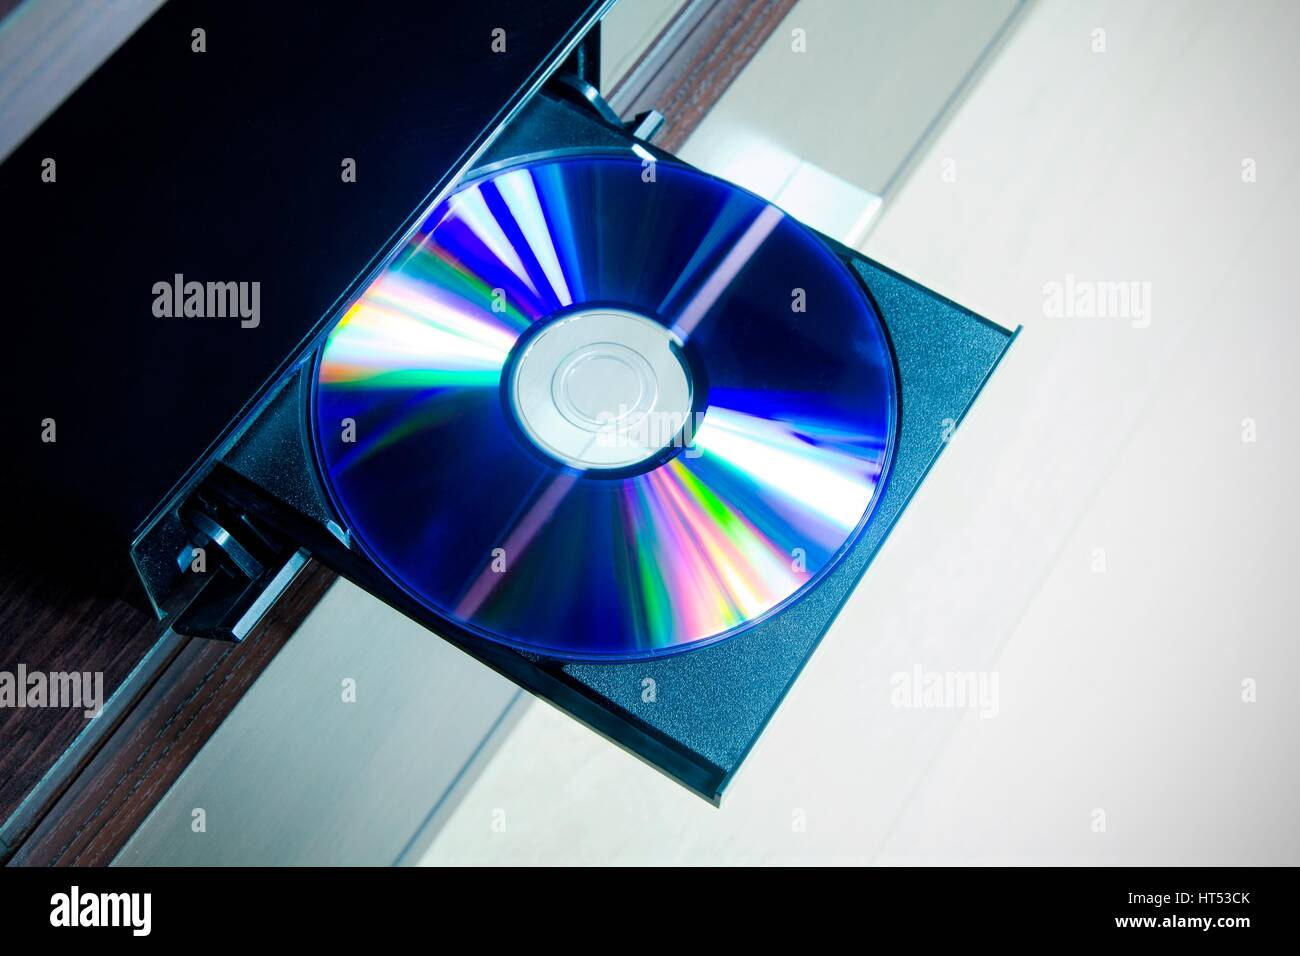 Disc insterted to DVD or CD player - Stock Image